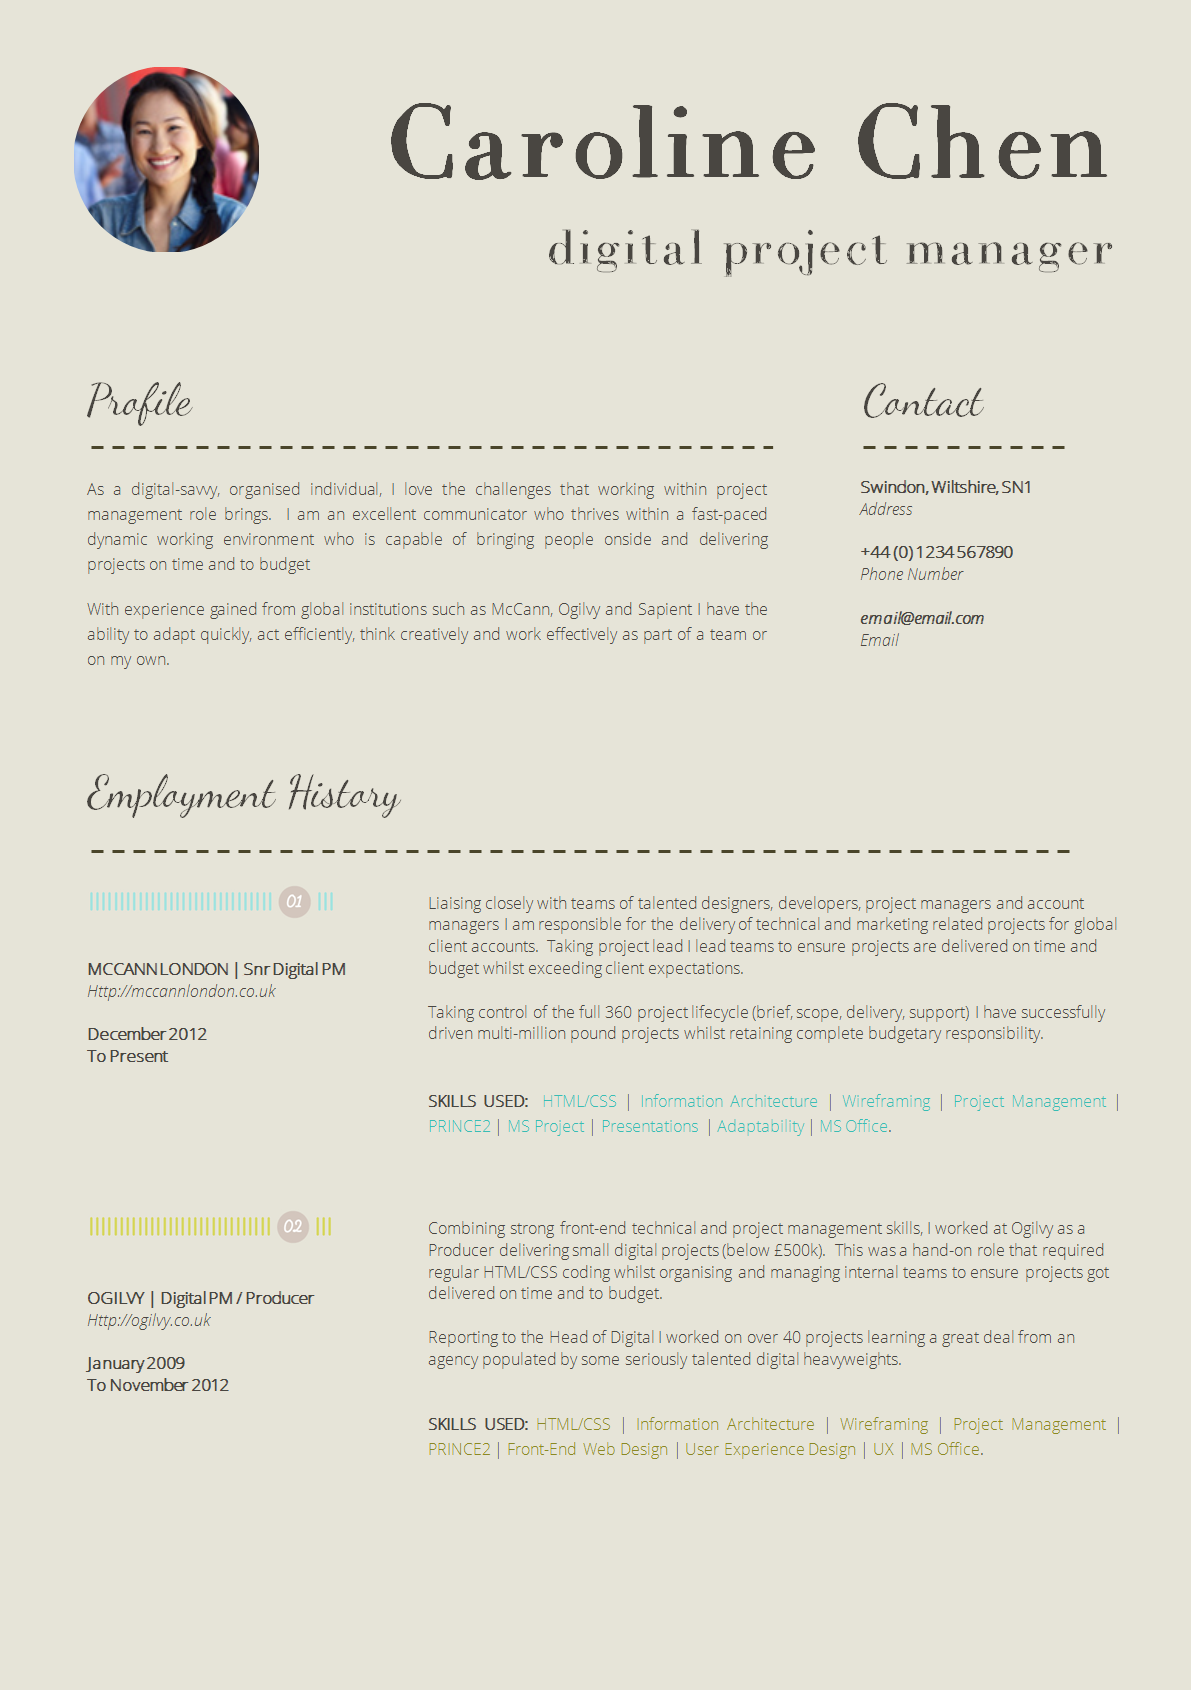 cv template - Cv Resume Samples Download